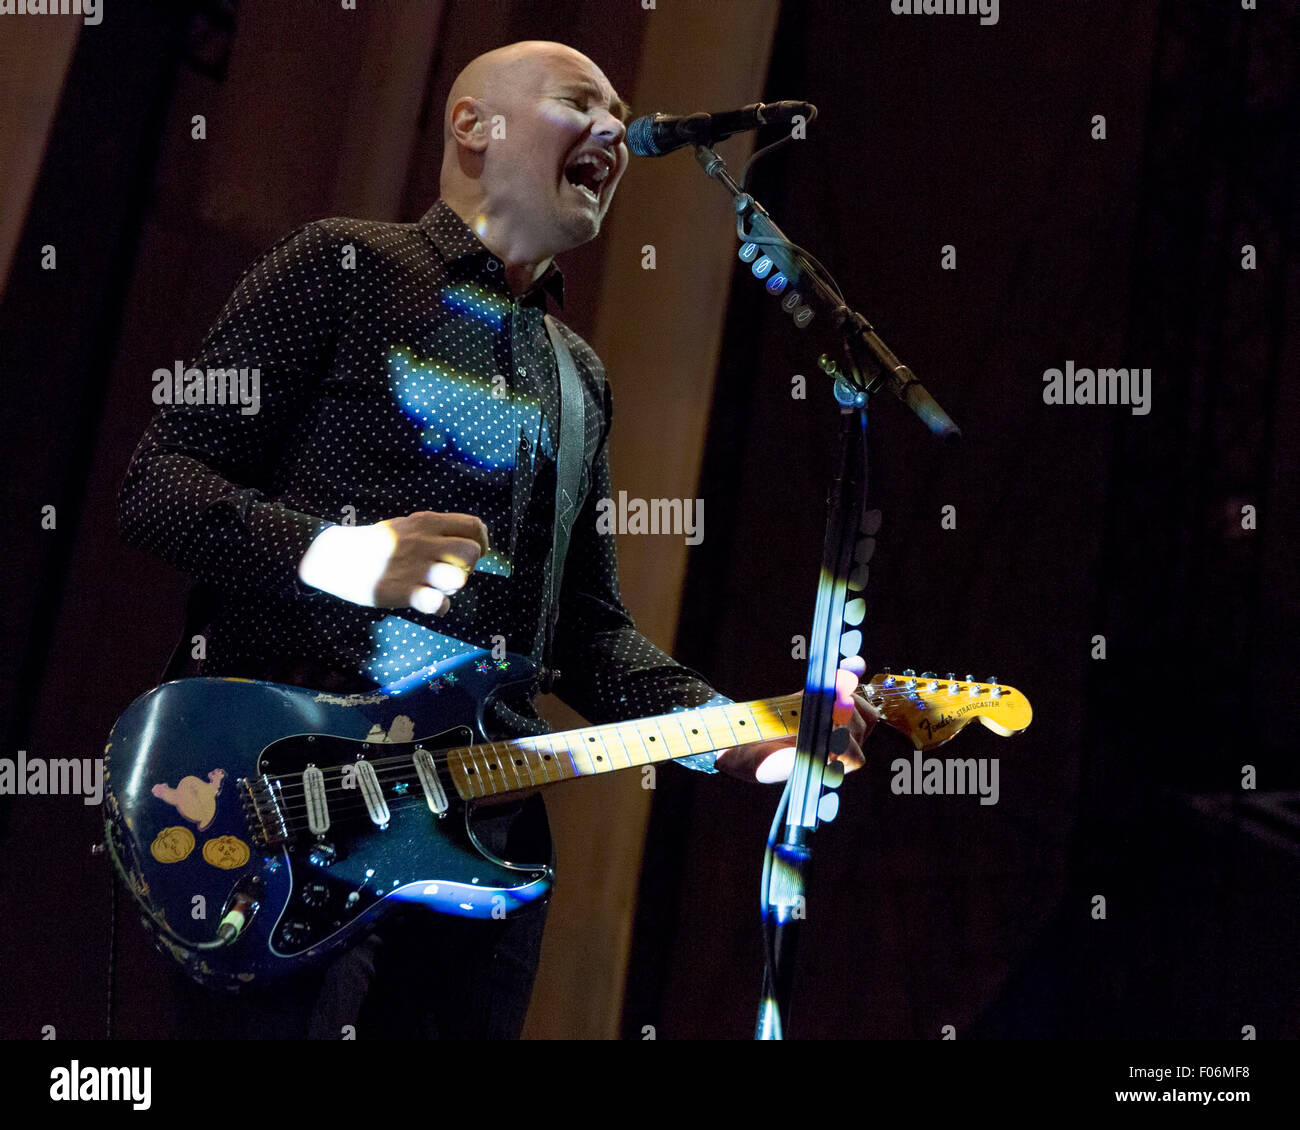 Chicago, Illinois, USA. 7th Aug, 2015. of The Smashing Pumpkins performs live at the FirstMerit Bank Pavilion on - Stock Image